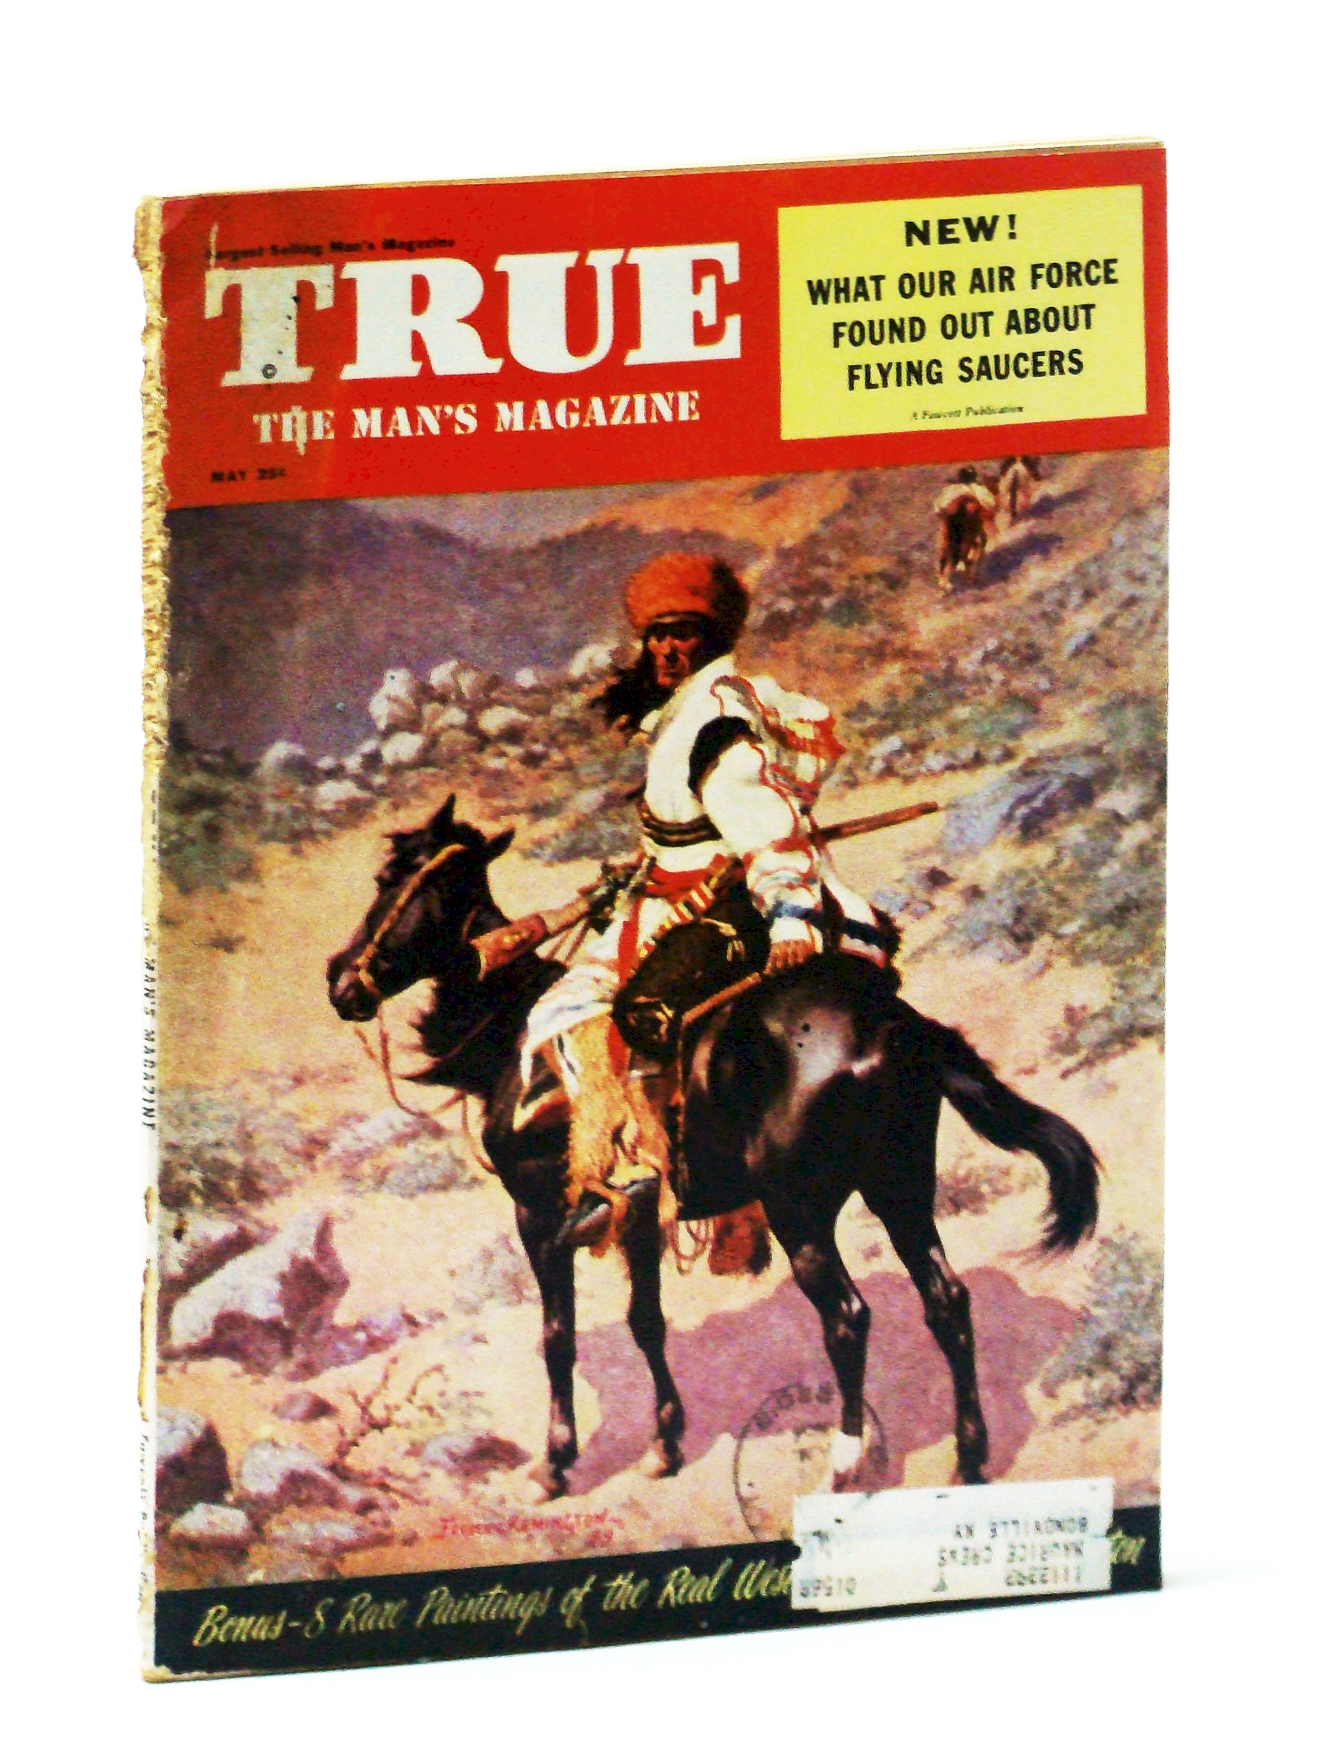 Image for True - The Man's Magazine, May 1954: The USAF and Project Blue Book